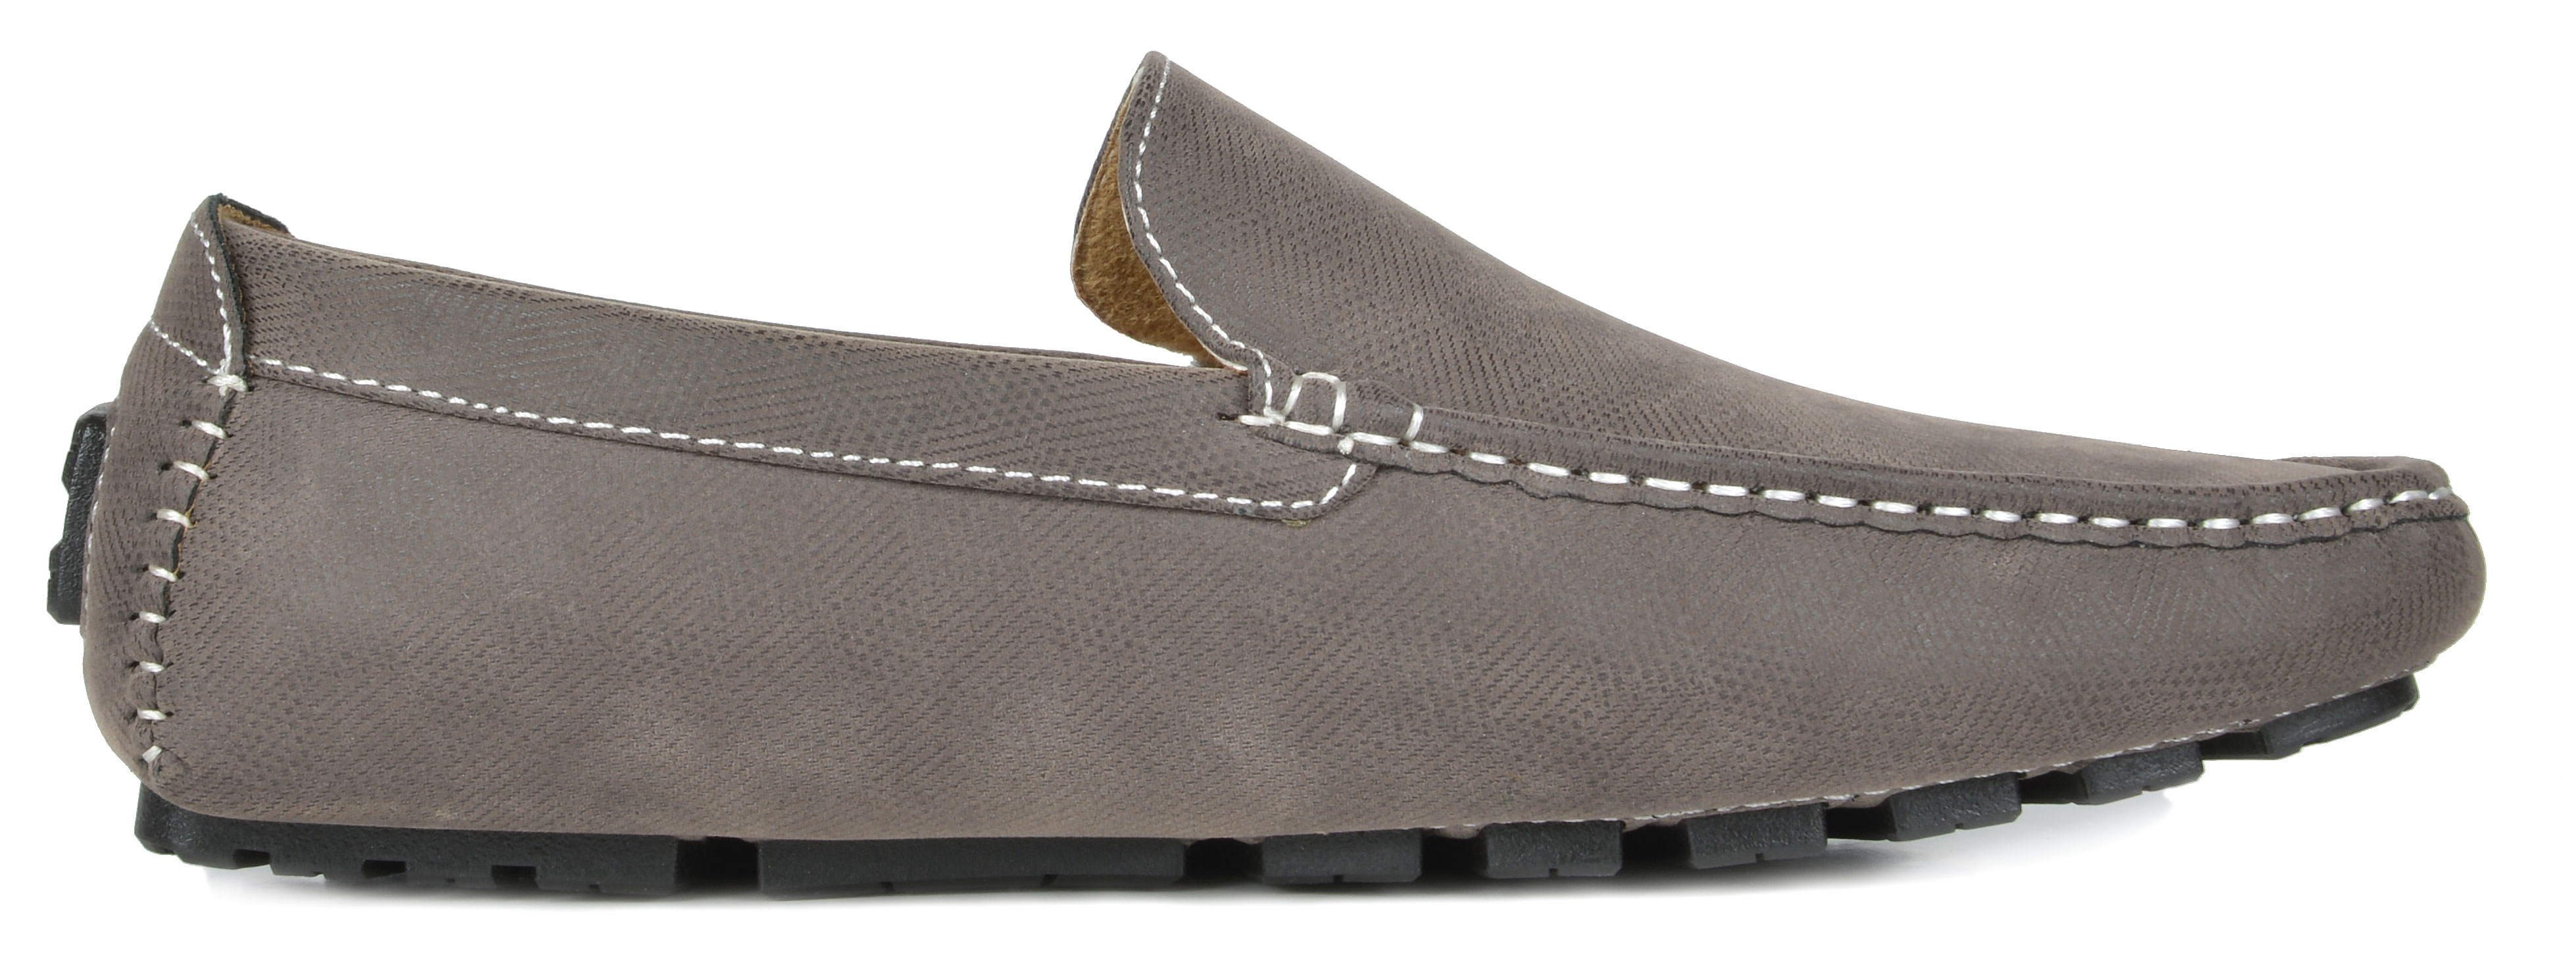 Bruno-Marc-Men-039-s-New-Classic-Fashion-Slip-on-Driving-Casual-Loafers-Boat-Shoes thumbnail 62